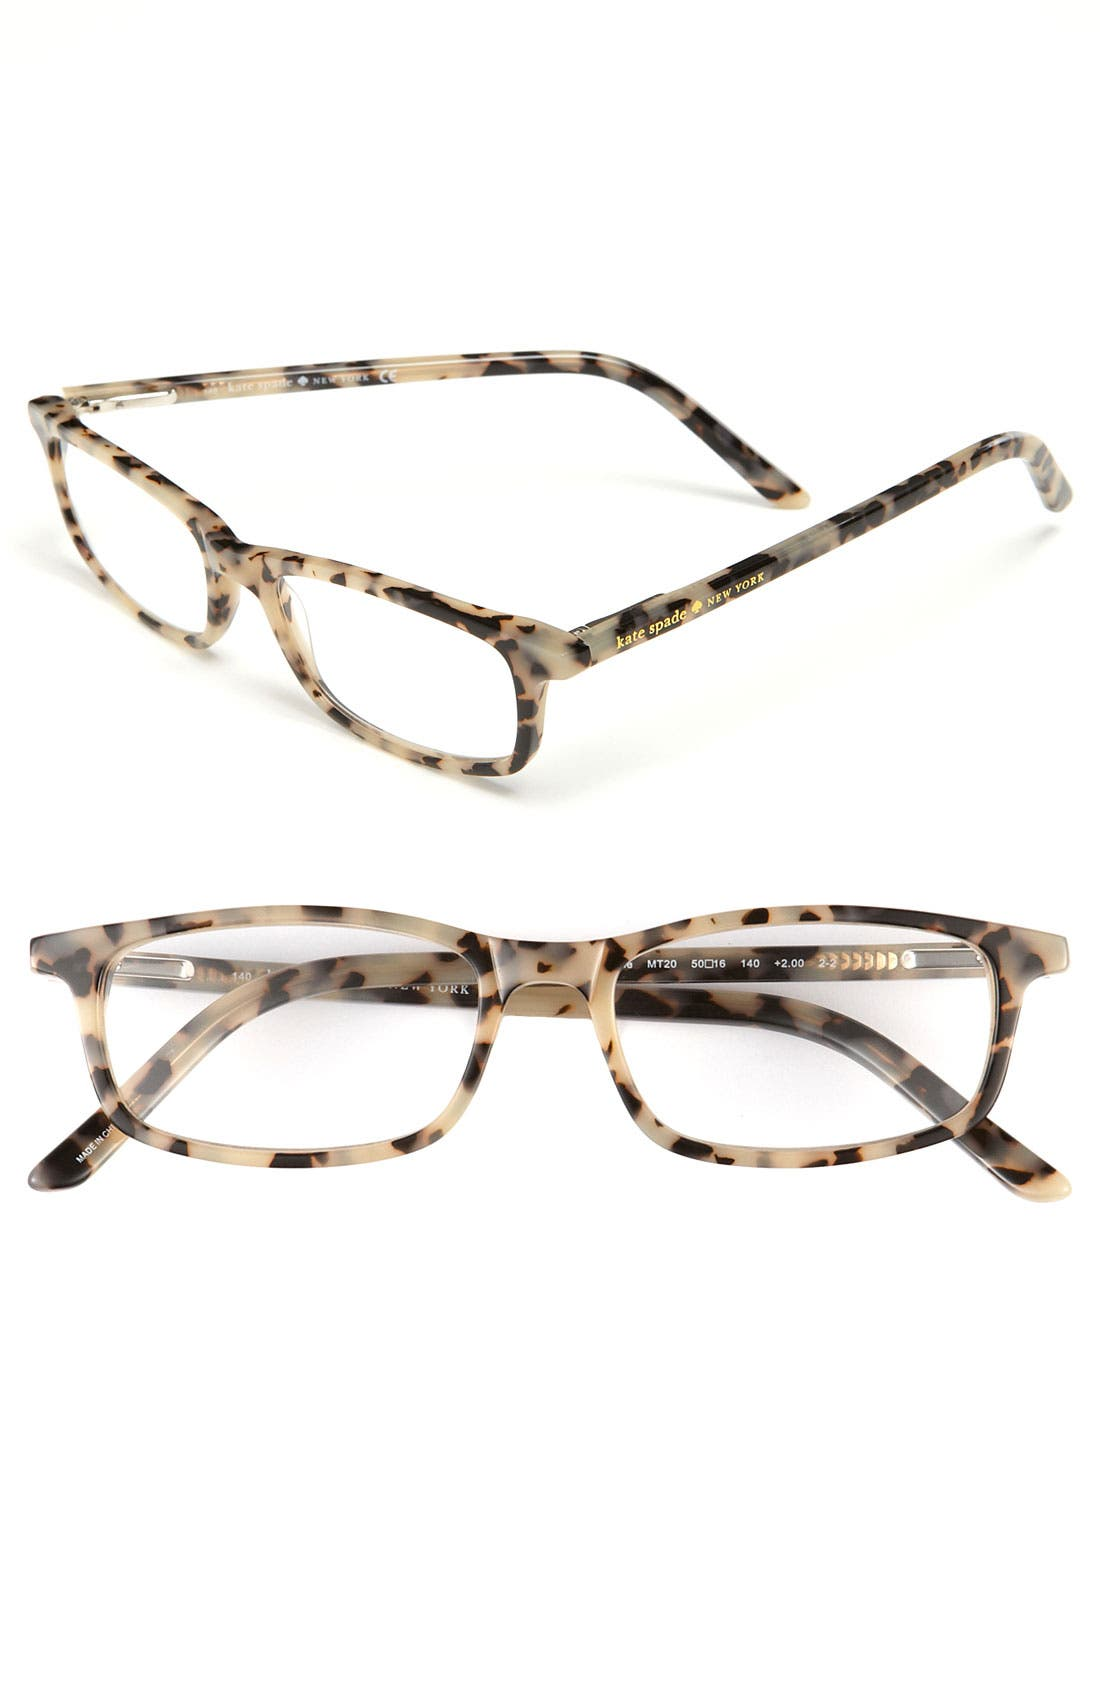 kate spade new york jodie 50mm reading glasses (2 for $88)